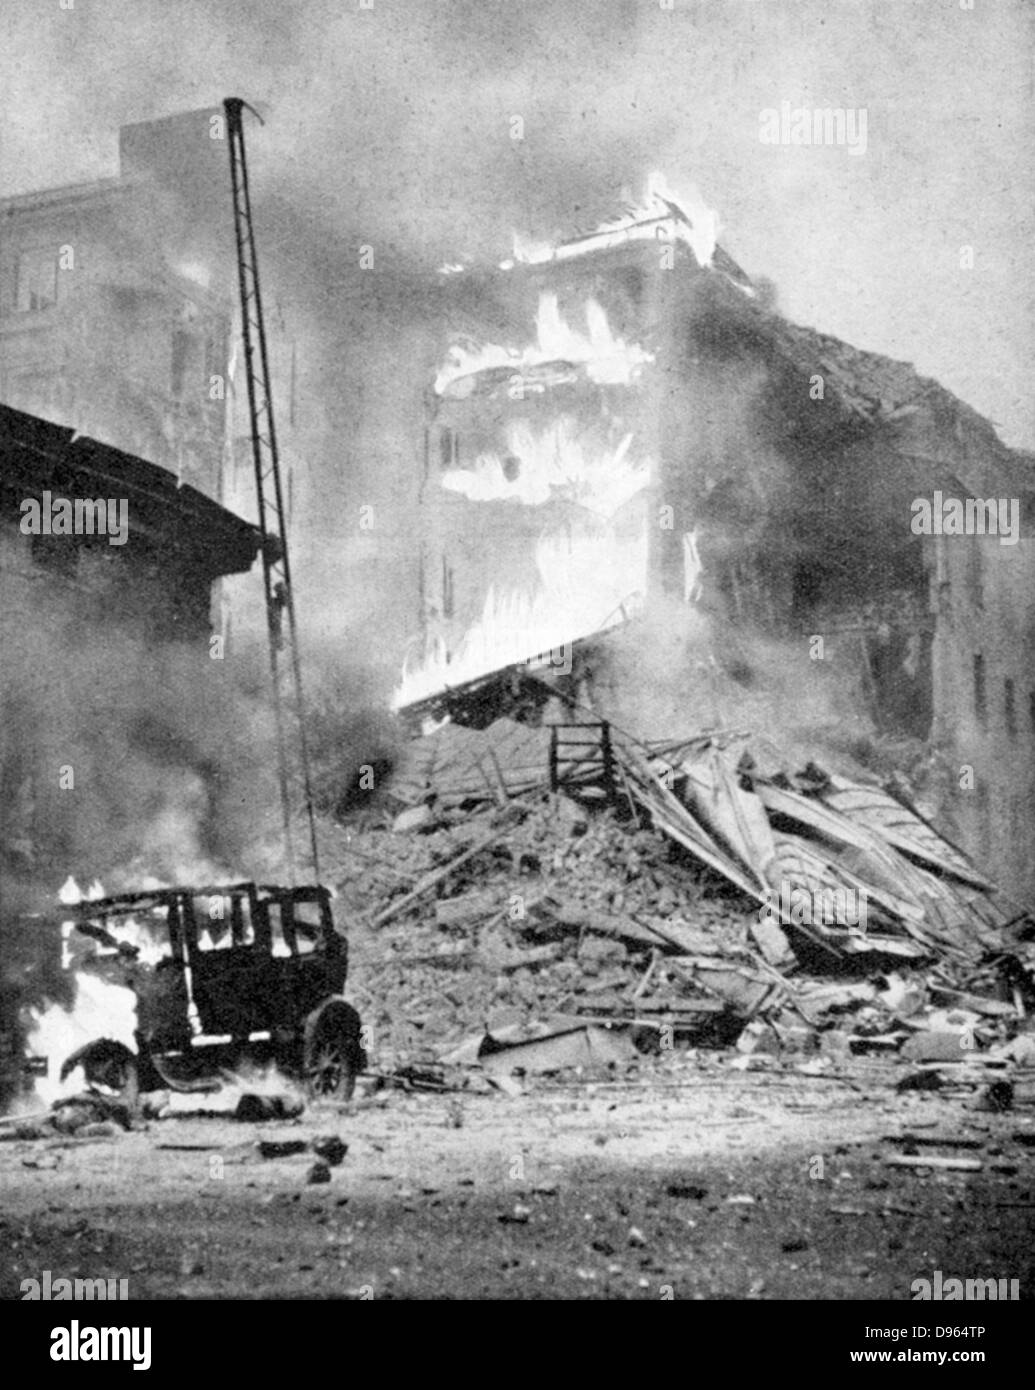 World War 2: Finland. Bombing of Helsinki by the Russians.  Block of flats in flames after a direct hit. - Stock Image